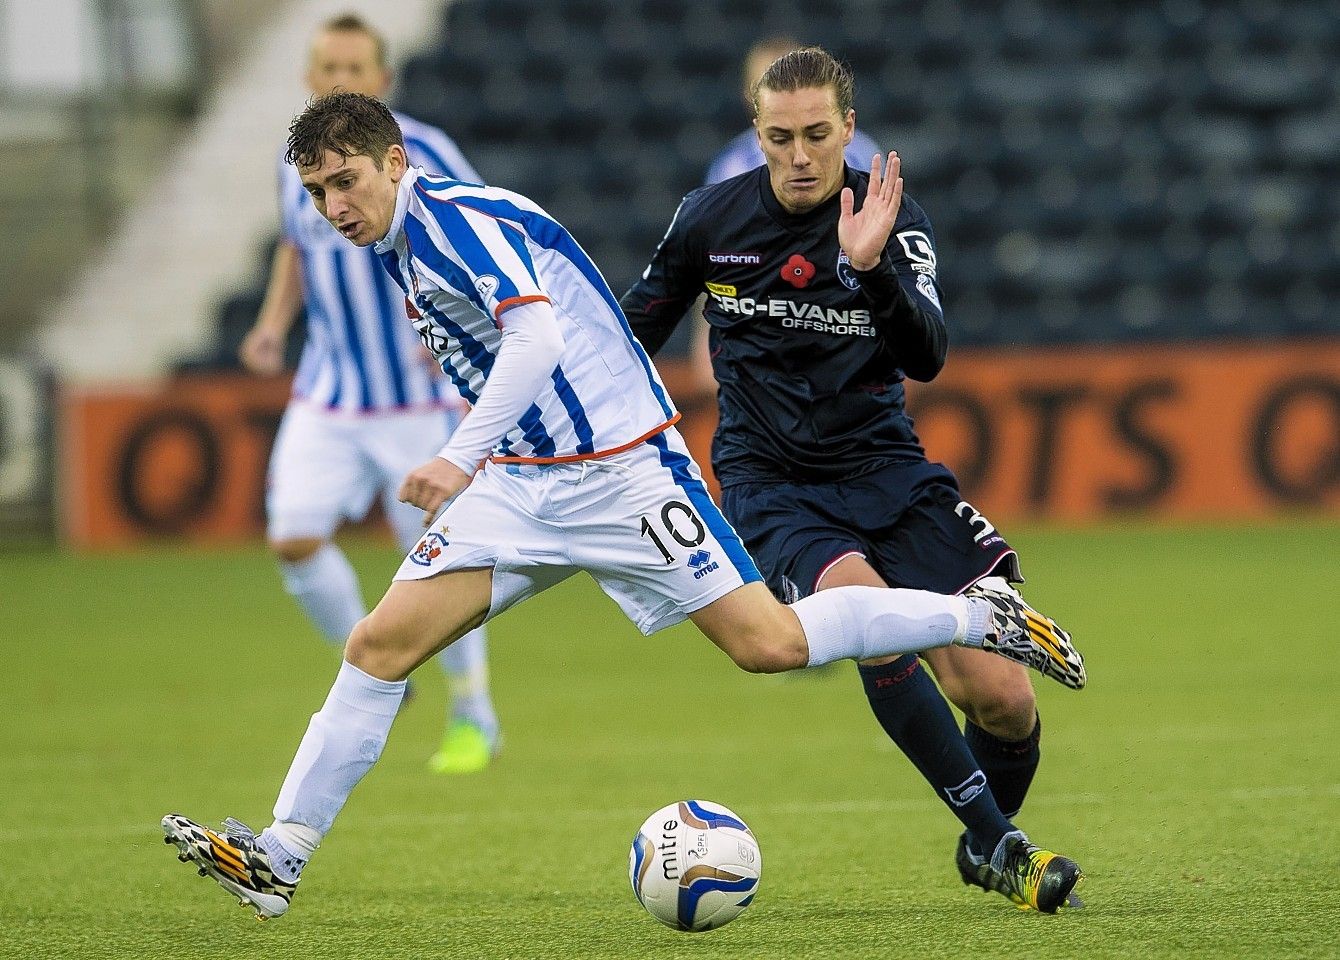 Jackson Irvine has made a permanent return to Ross County, after impressing on loan last season.